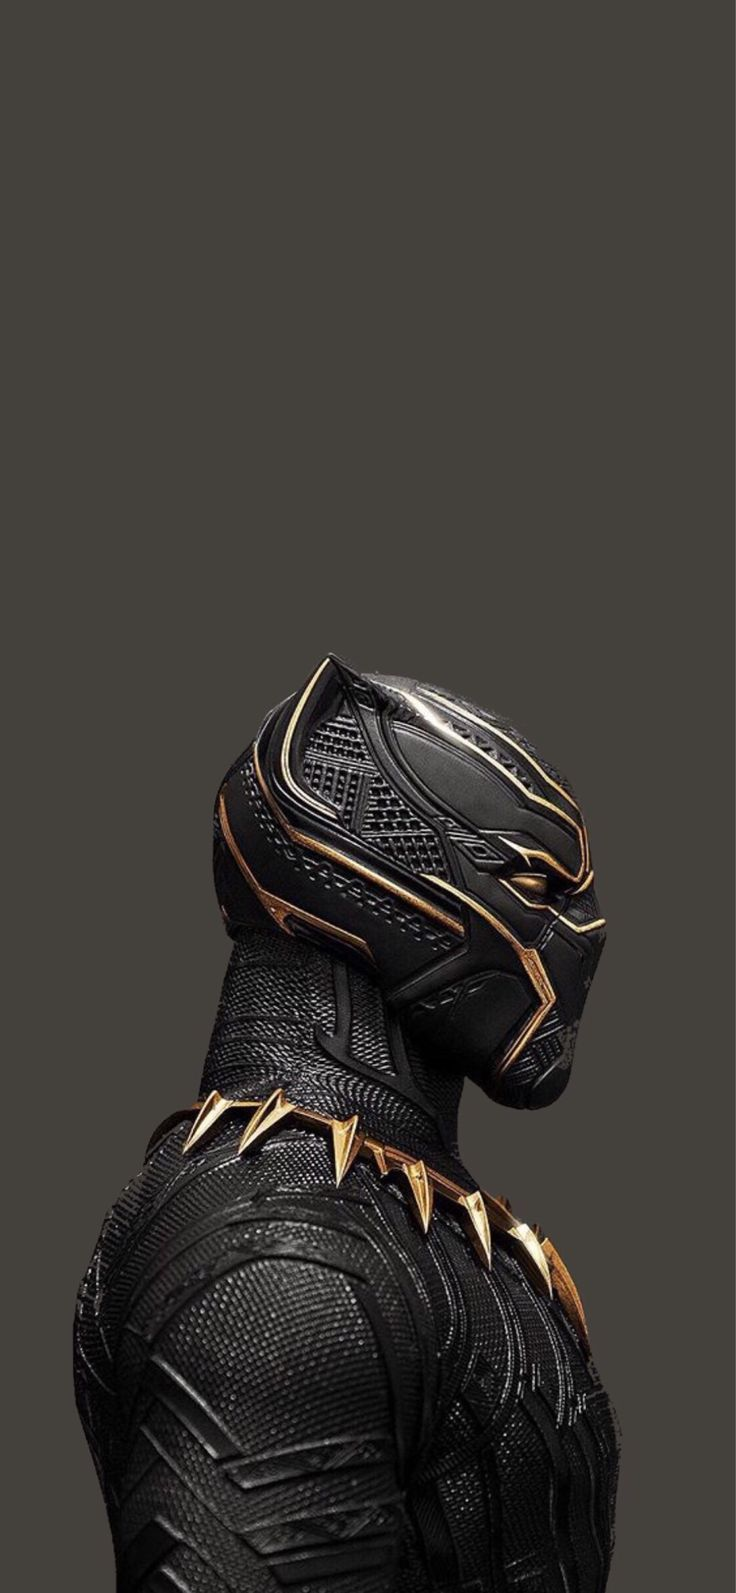 Black Panther Hd Wallpaper Background Mobile Iphone And Android Apple Desktop Ideas Of Ap Black Panther Hd Wallpaper Black Panther Art Black Panther Marvel